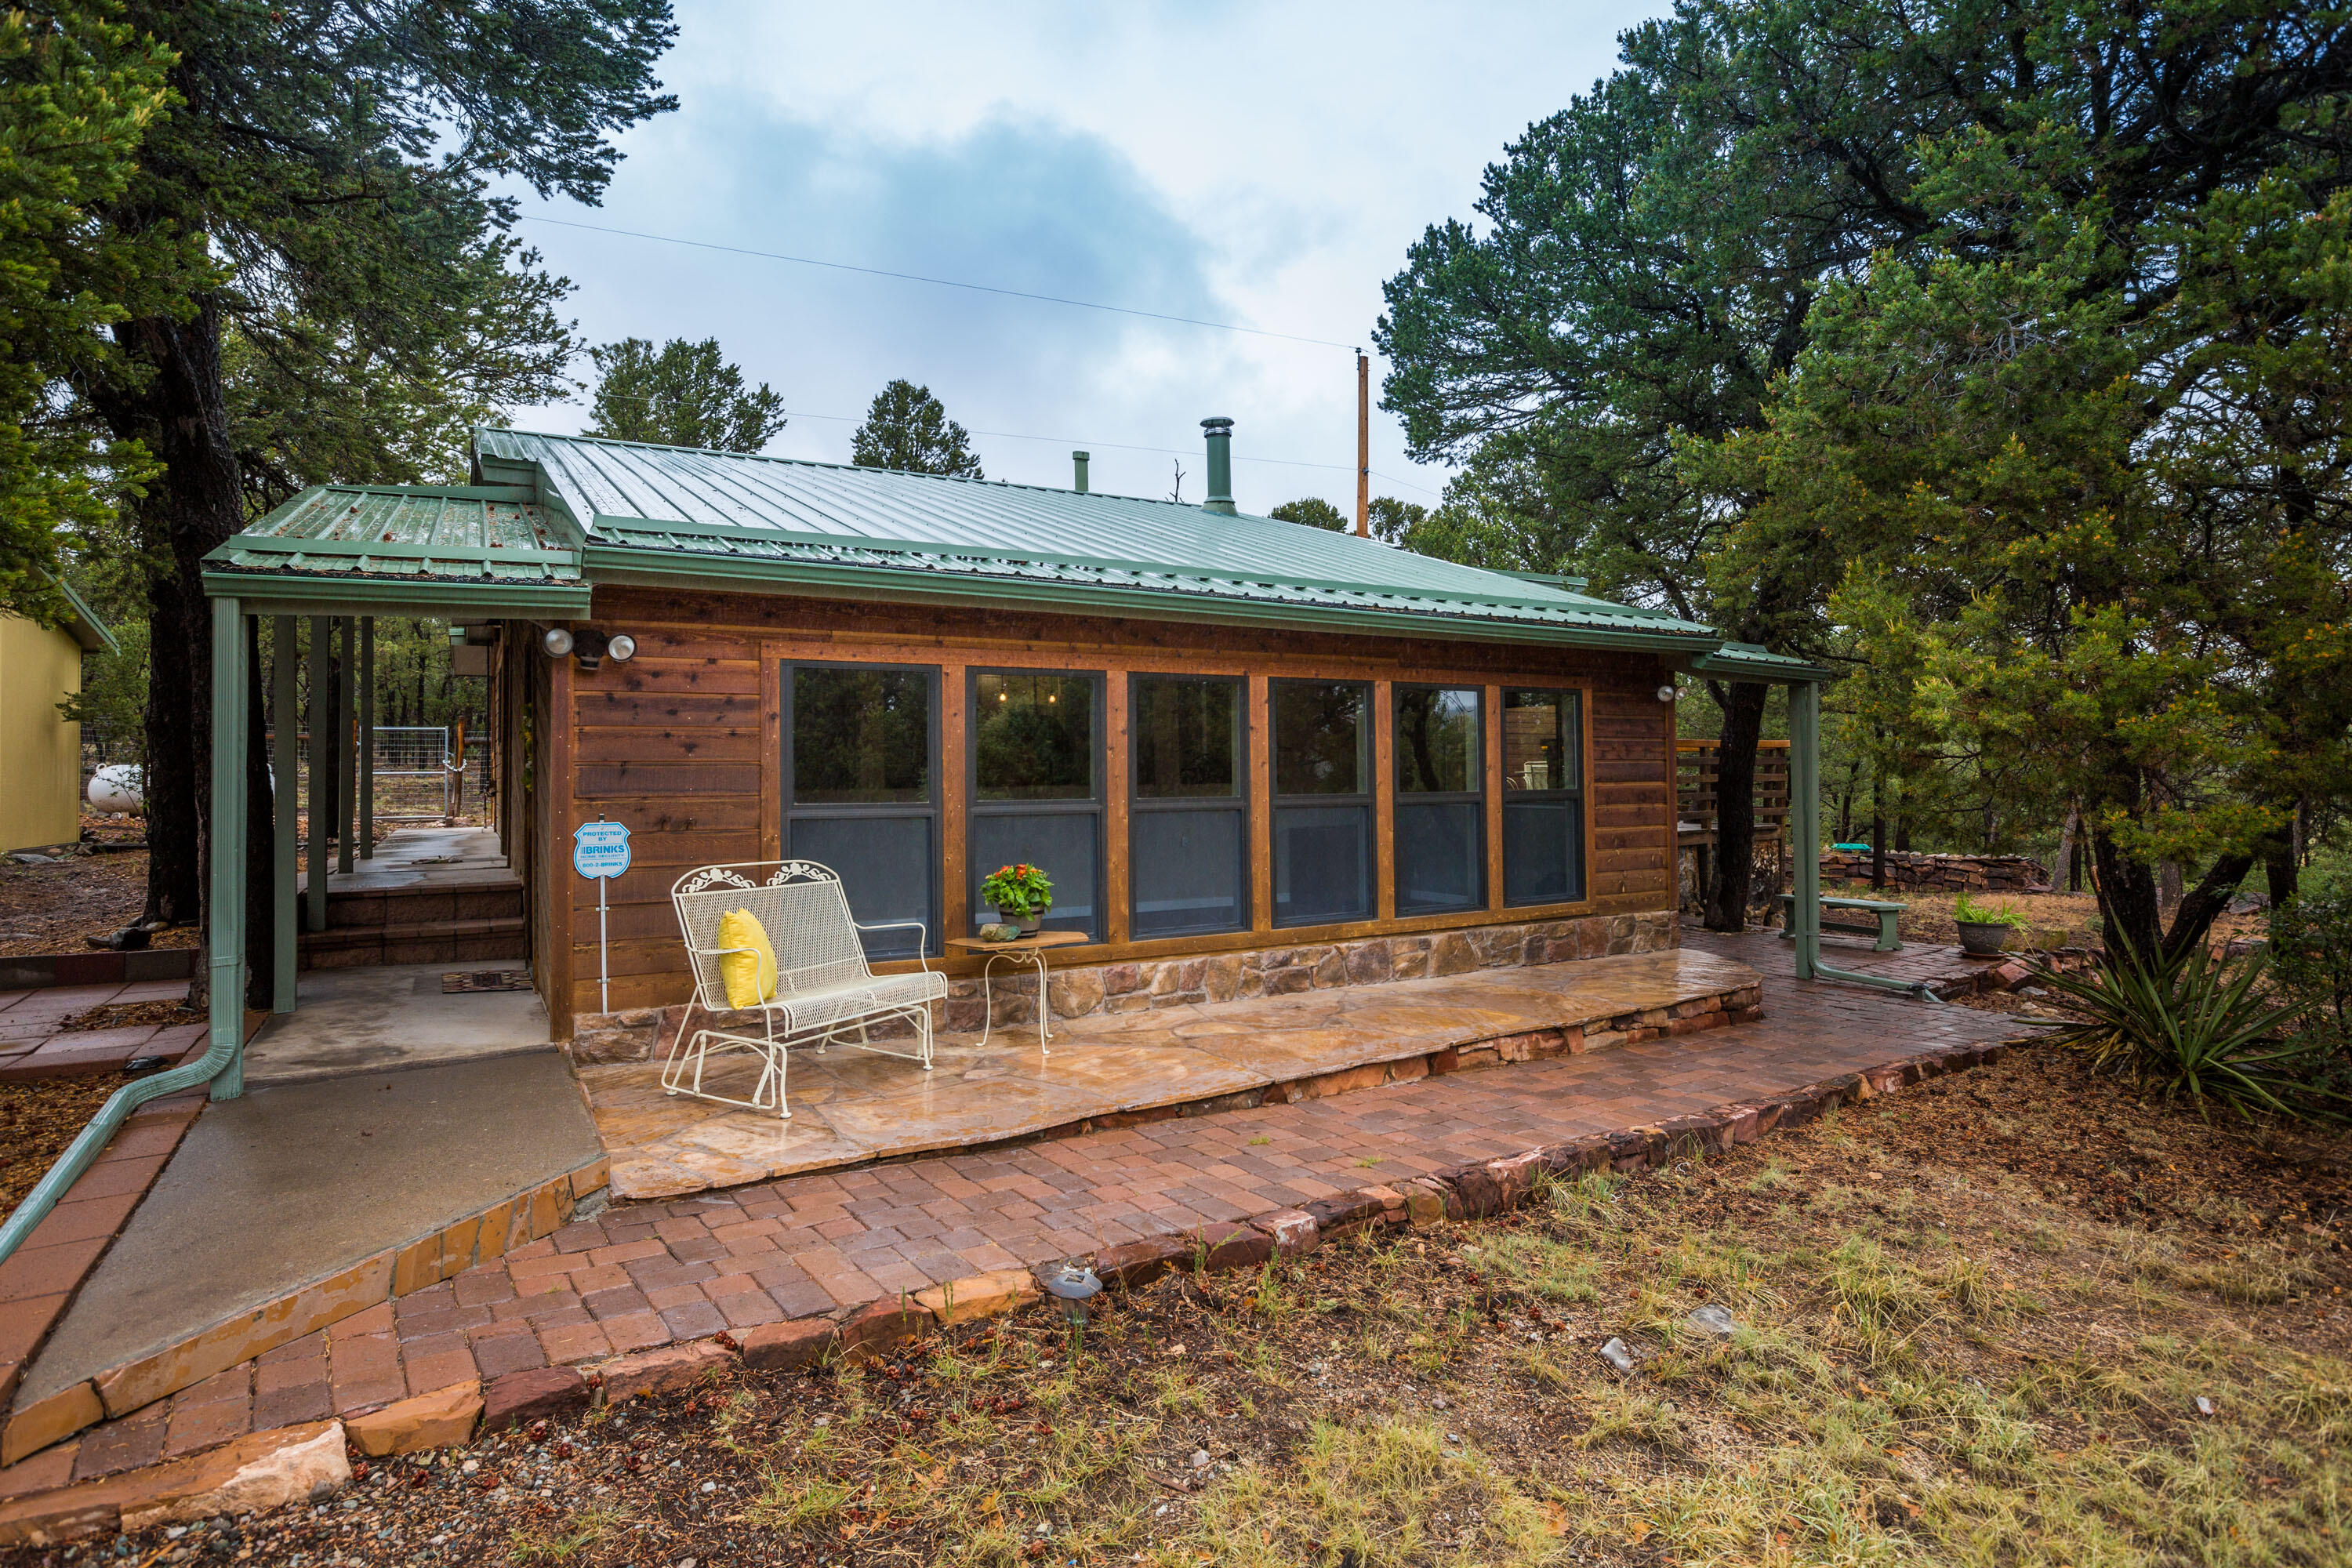 This is the remote cabin retreat you've been waiting for. Nestled on two (fenced) acres, backing to national forest, this property is mountain-living at its finest and still only 20 min from ABQ. This home has been loved by its current owner for 14 years and was just completely remodeled for its new owner. The kitchen boasts custom cabinetry, high-end granite, all new stainless steel appliances, and will have a new backsplash (not pictured). Both bathrooms have been beautifully updated, new hardwood floors and carpet throughout. Mechanical upgrades include: all new pex plumbing, updated electrical, pro-panel roof (with R60 insulation), solid core doors, new water heater. Great internet! Need a shop? Enjoy the 3 car garage with perfect workspace. Its rare to find a home this updated.